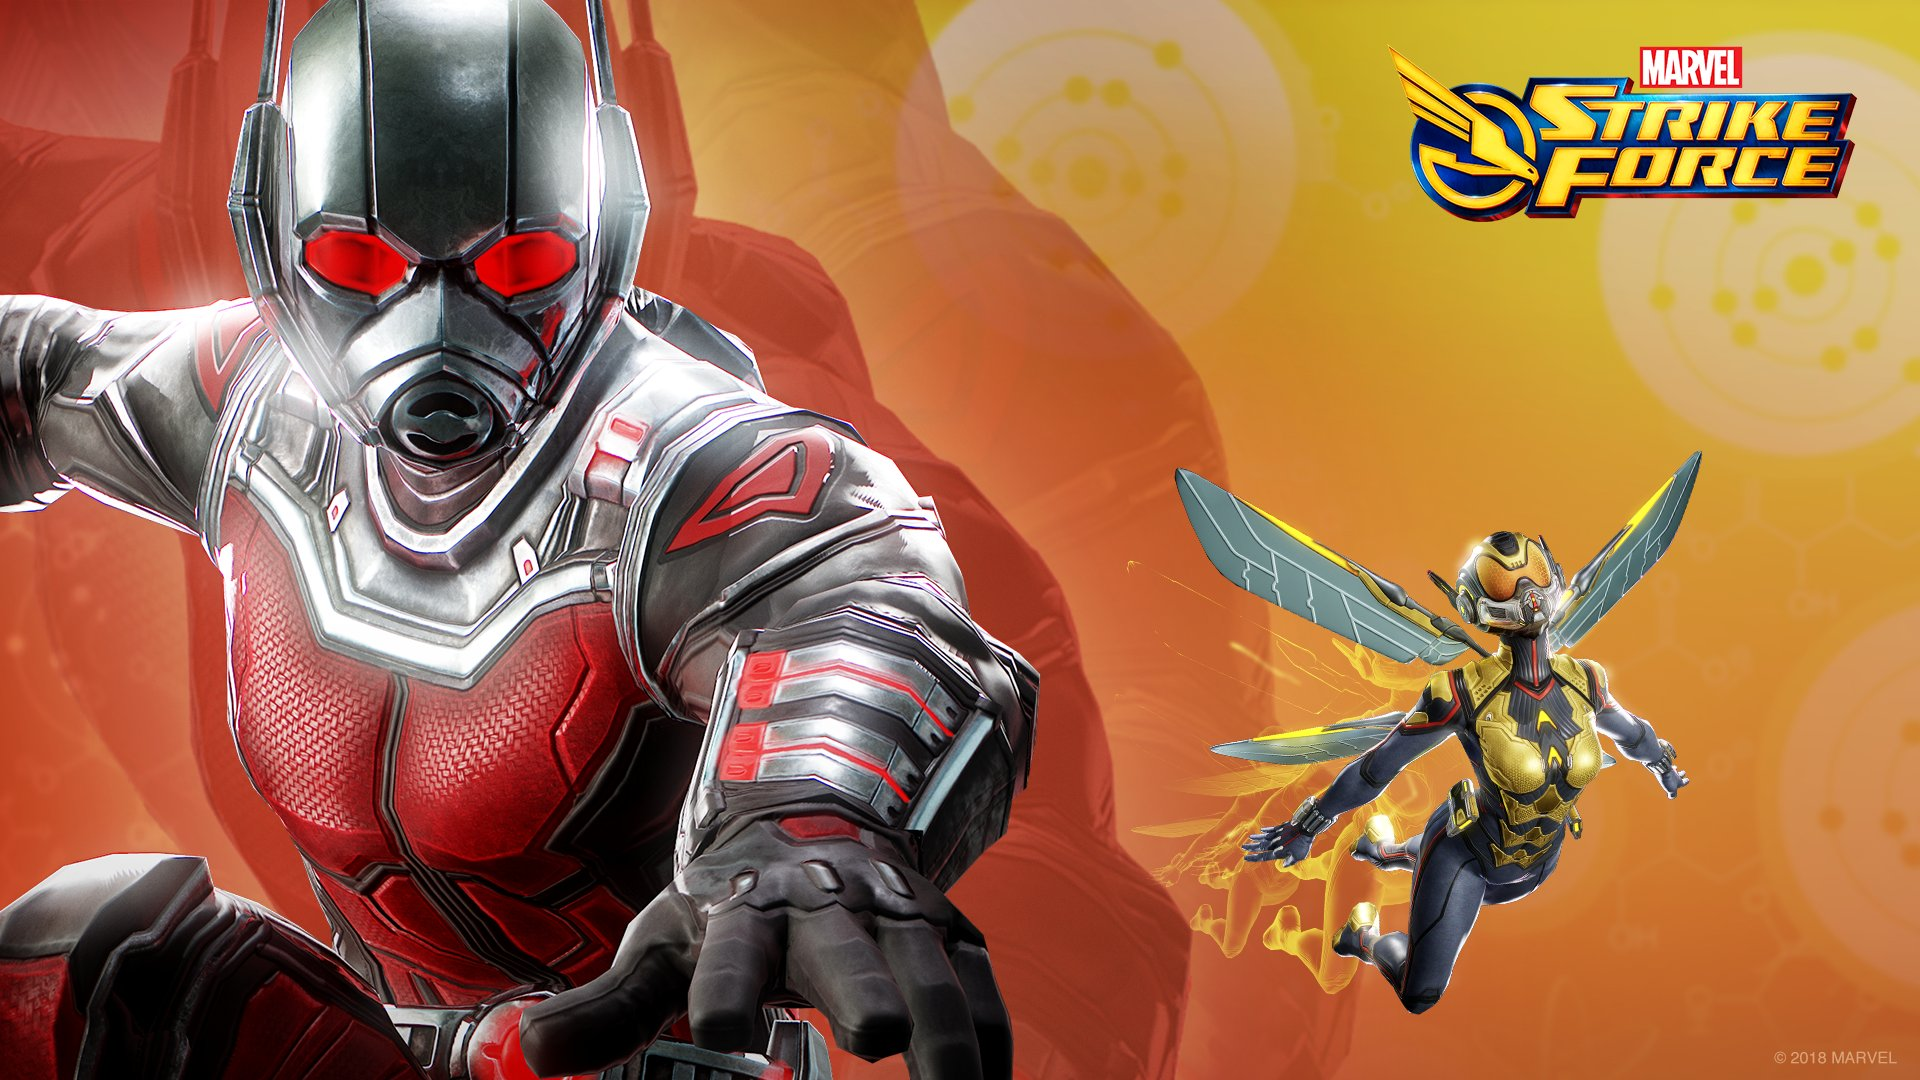 Ant-Man & The Wasp Content Coming To Marvel's Games